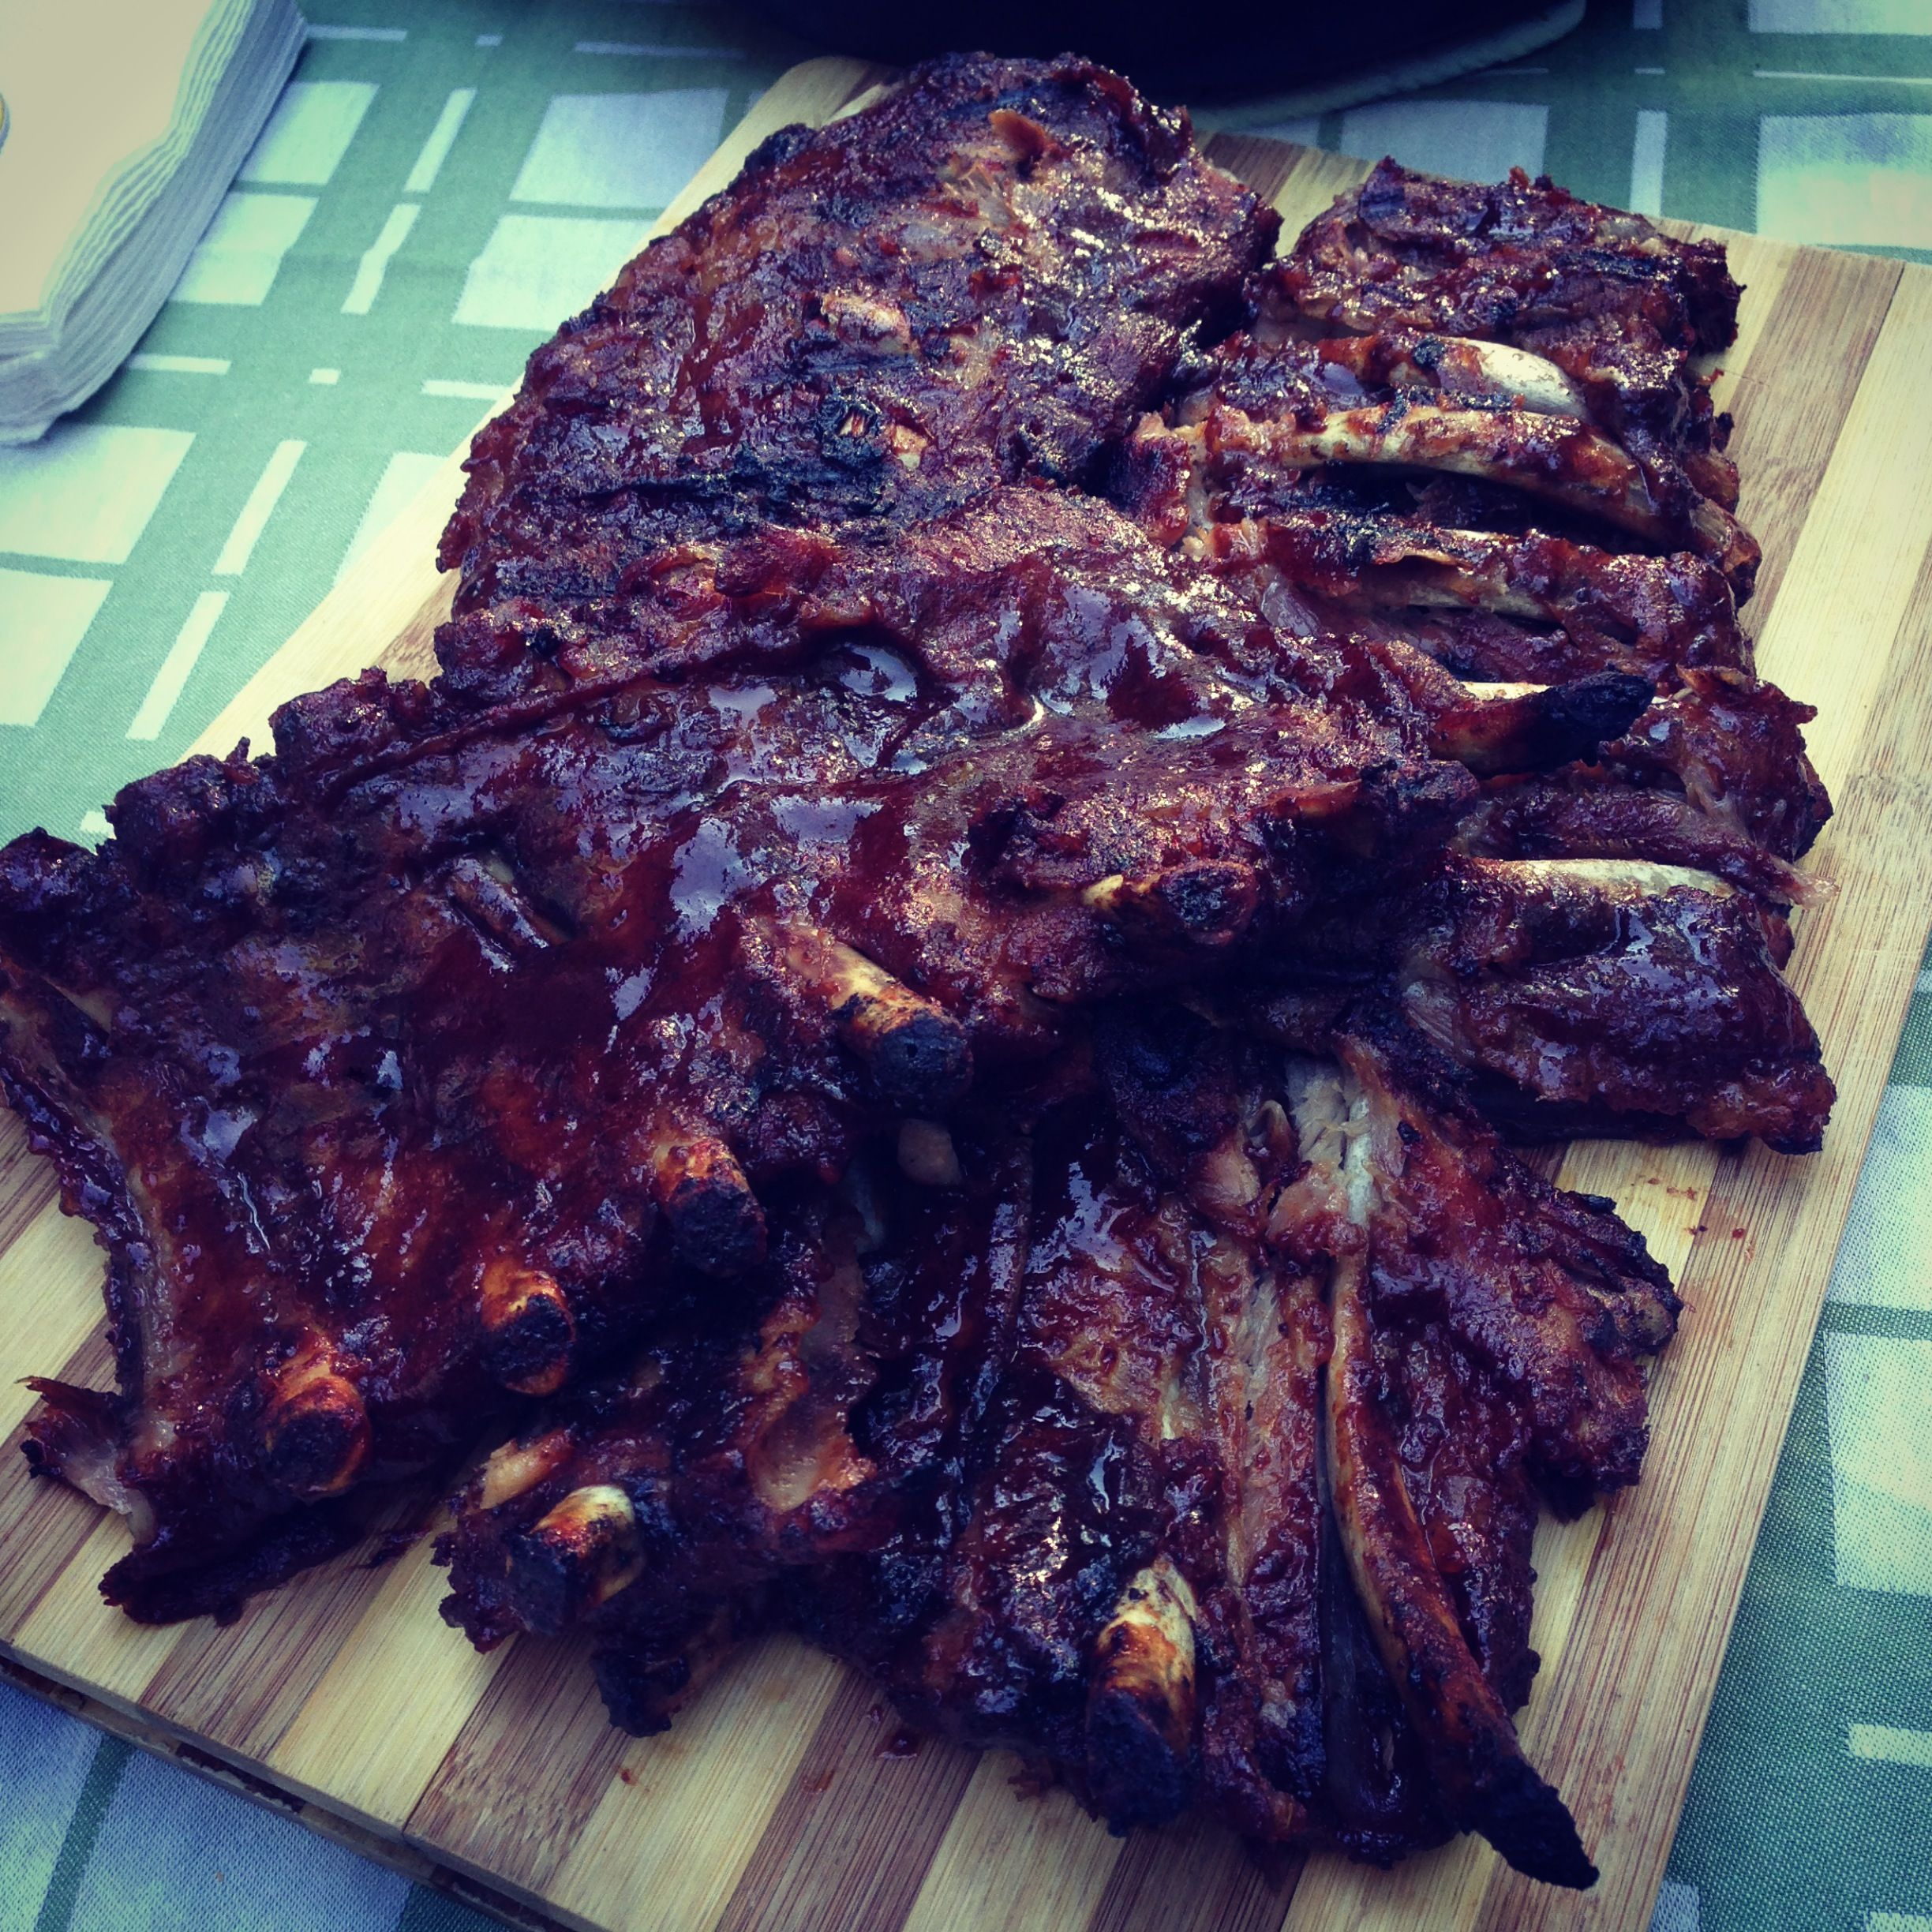 Slow cooked BBQ ribs Slow cooked bbq, Food, Bbq ribs